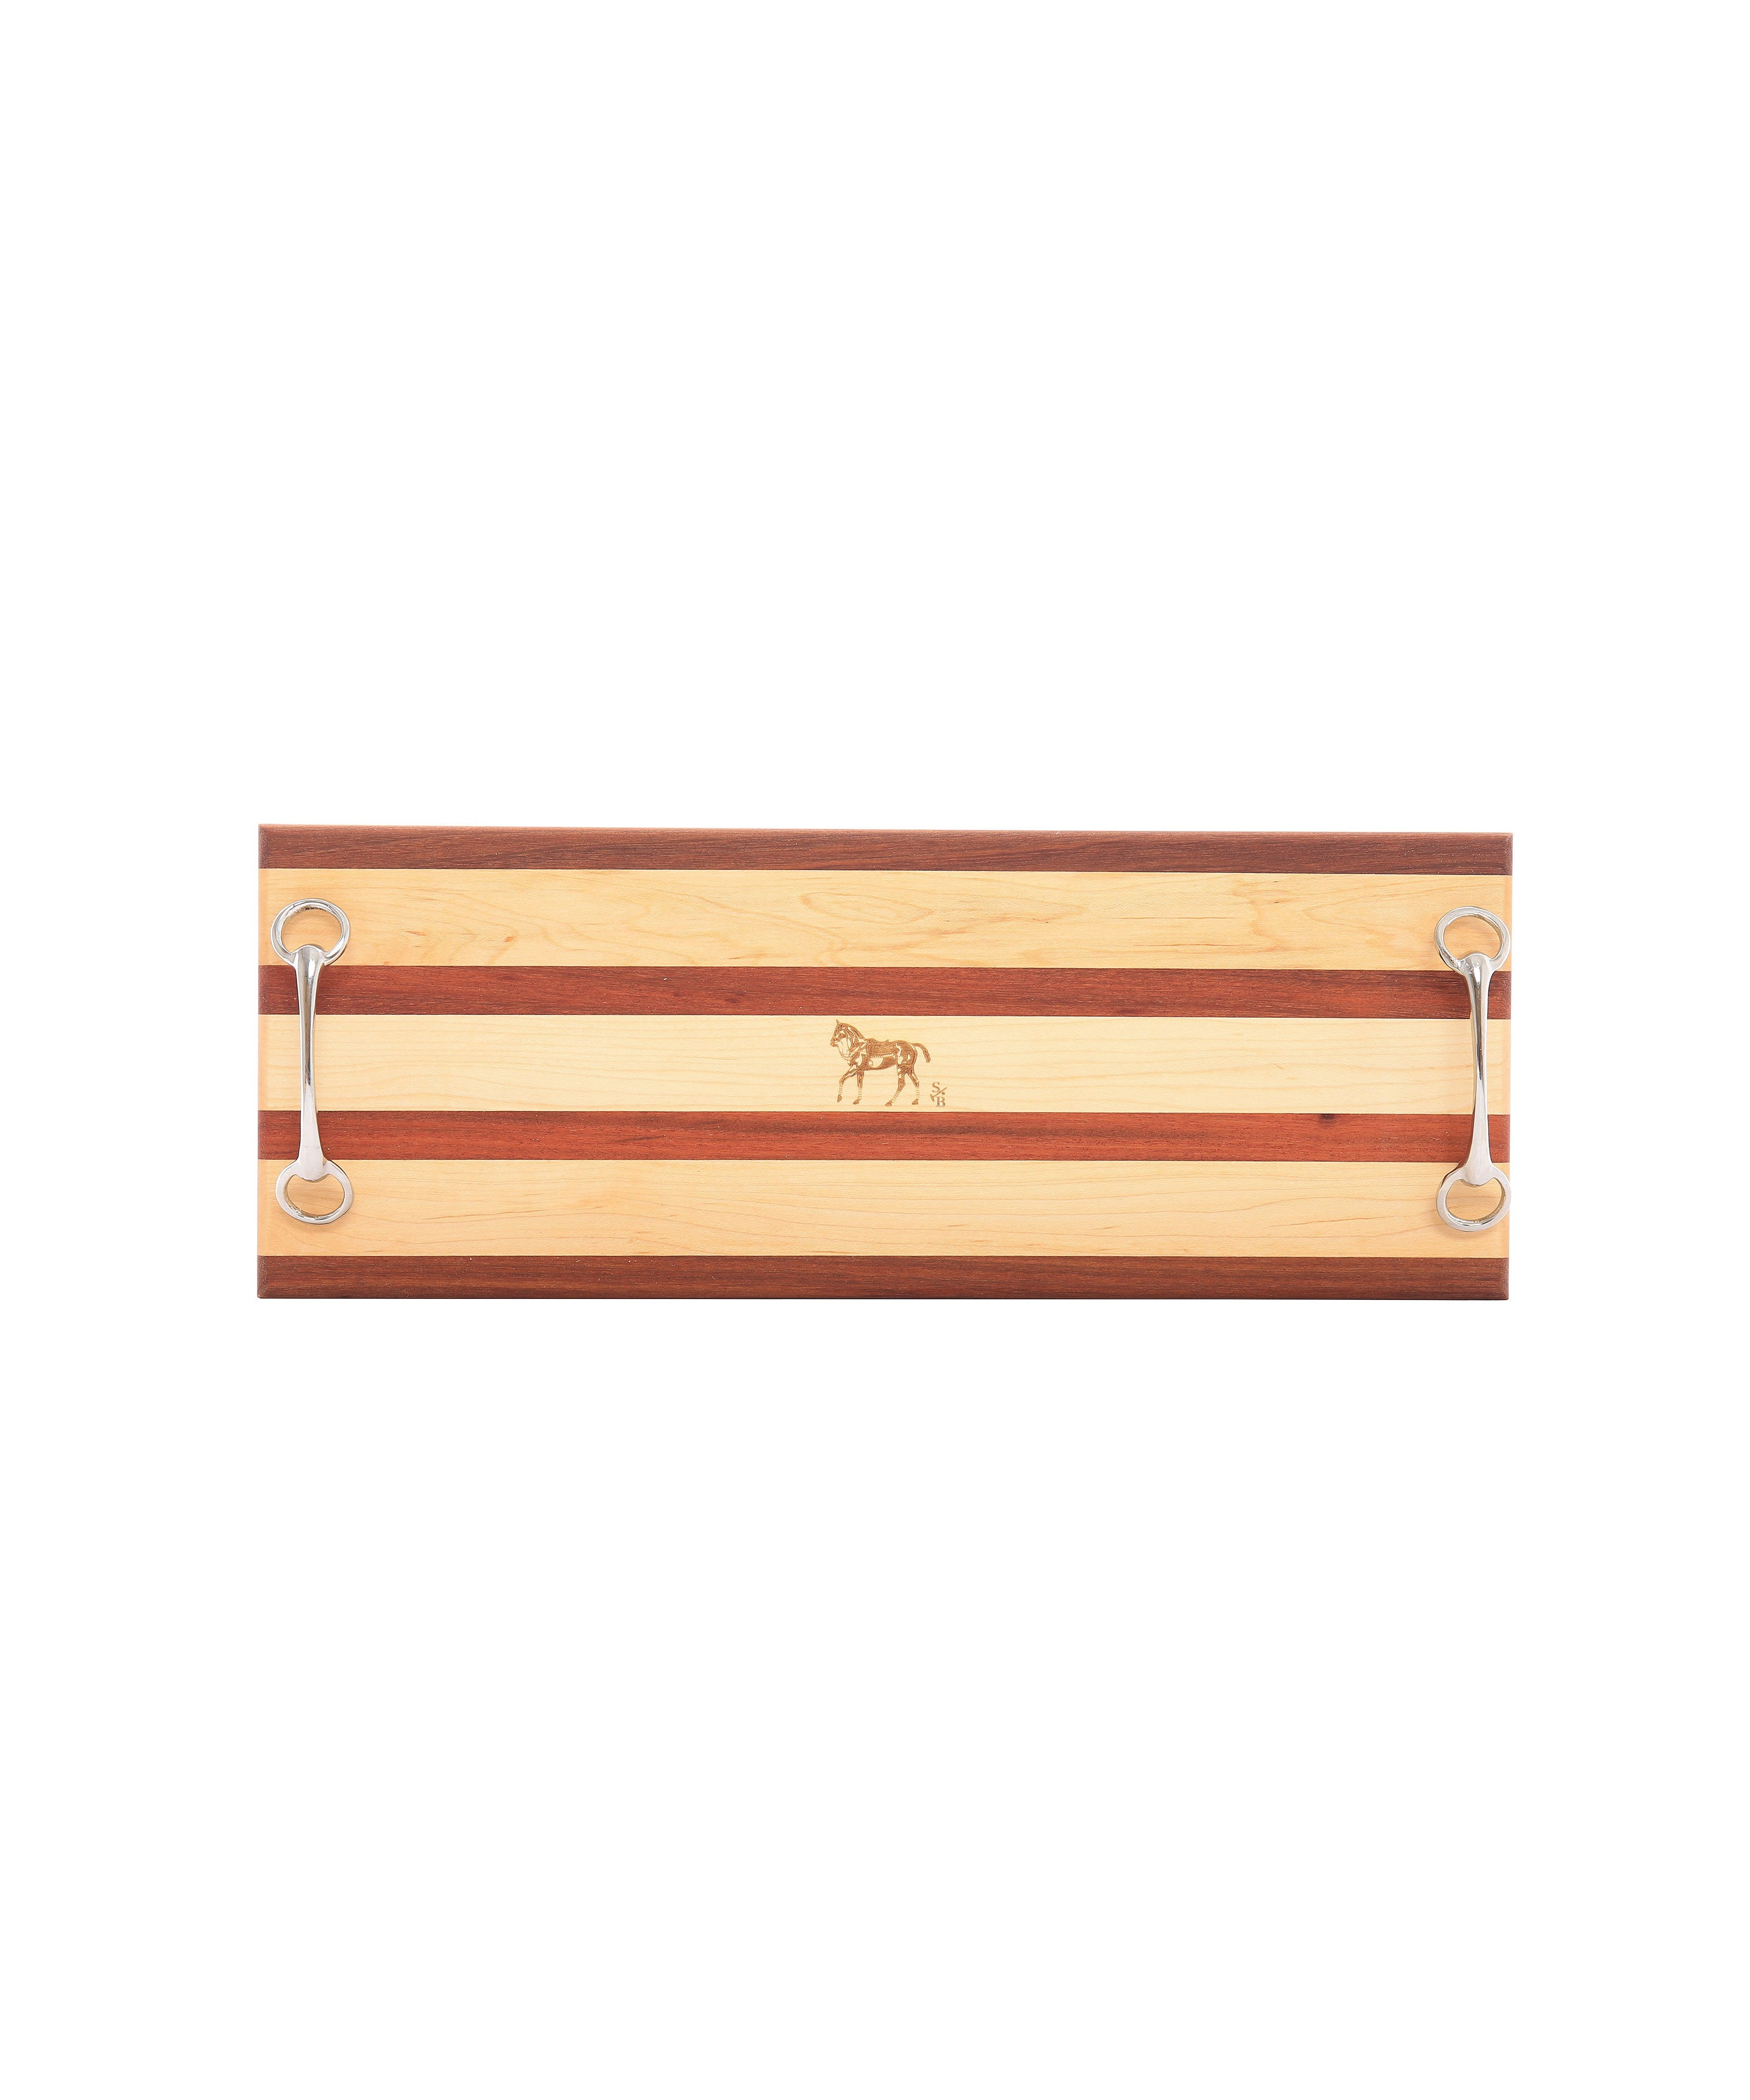 Double Bit Serving Board - Polo Pony